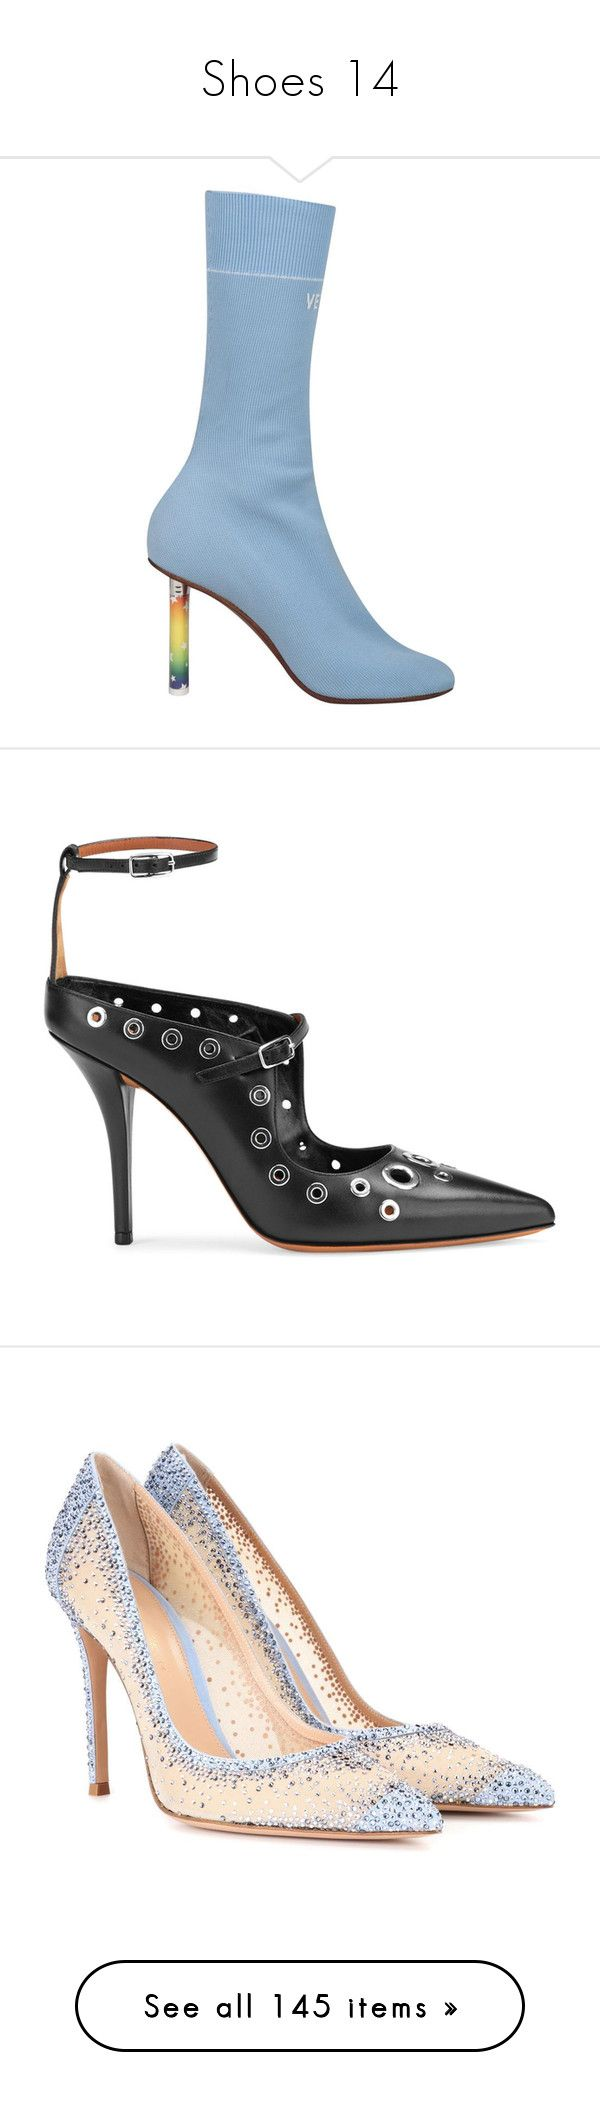 """""""Shoes 14"""" by fashionmahlo ❤ liked on Polyvore featuring shoes, boots, azzurro, vetements shoes, sock boots, pumps, black, black ankle strap shoes, pointy toe pumps and black leather shoes"""